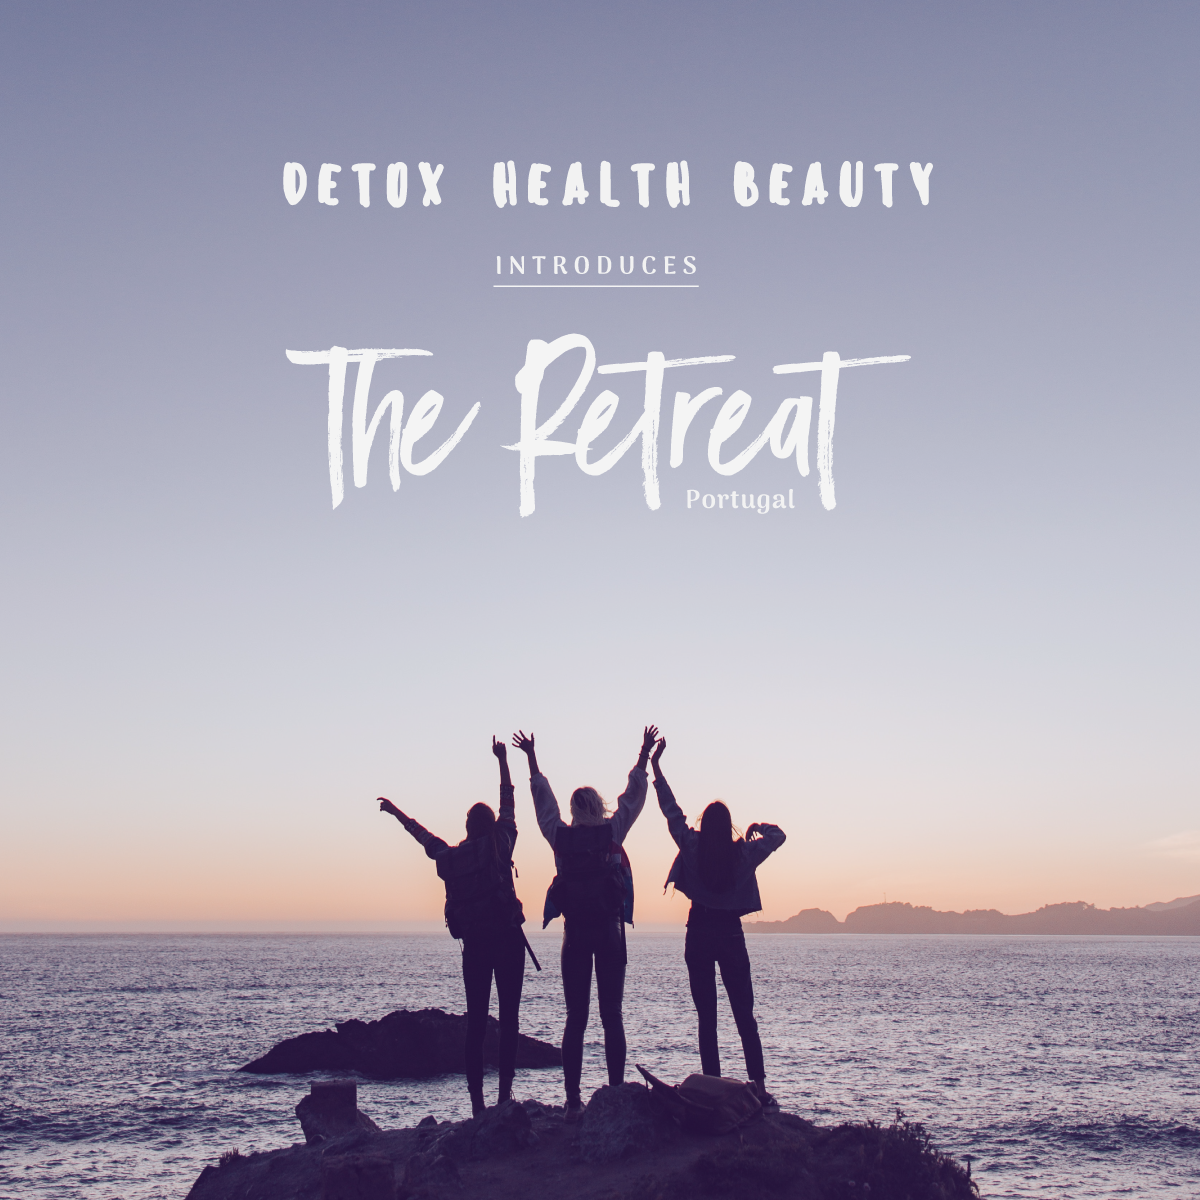 We are so happy to announce our first  Detox Health Beauty Retreat !   Place:   Cascais (a stunning seaside town just outside Lisbon), Portugal.   Dates:     Tues 10th September - Sun 15th September (5 nights)    I visited Lisbon a few months ago and the plant based foodie/wellness scene there was incredible. My friend and I unearthed loads of very cool places to eat and we loved the city. I travelled to Portugal with the intention to create a retreat there in 2019. We took the short train ride to Cascais from Lisbon and we met an amazing woman called Laura, who owns  Guincho Wayra House , where DHB retreat is taking place. The rooms are shared dorms (pretty standard for a retreat like this). The house is set in a picturesque valley, overlooking Guincho Beach and the magical Sintra Natural Park. A perfect place for deep relaxation, bathing in nature, retreating, resting, recharging, eating super healthy and delicious food and generally having fun.   Included in the price:    Accommodation  at Guincho Wayra House  Our  plant based chef  is going to source food from the local market in Estoril every day and will prepare daily breakfasts and 5 plant based/vegan meals throughout the week including a starter, main and vegan dessert.  A guided  5 - 6 hour hike in the Sintra Natural Park  (a truly stunning place, where Madonna lives…) with a plant based packed lunch prepared by the chef.  5 morning  yoga  classes (vinyasa flow, hatha and ashtanga)  2  massage treatments  during the stay, with a choice of ayurvedic, balinese, thai and reflexology  1  kite surfing  lesson or  paddle boarding  lesson  There will be a  day trip to Lisbon  and free time to go for walks, spend time at the beach, lie in the hammock, visit Cascais - whatever you feel like.  We are going to have  mini workshops  including  crafting sessions  with Honeyed Bison. There will be  ayurvedic workshops and meditations  too.   It's going to be gorgeous.    Price:  £887 (excluding flights, which you will book separately arriving into Lisbon Tues 10th September, leaving Lisbon Sun 15th September)  There are  14 golden spaces  and we are going to operate on a first come, first serve basis.  Please email directly to  book your space:   sheena@detoxhealthbeauty.com